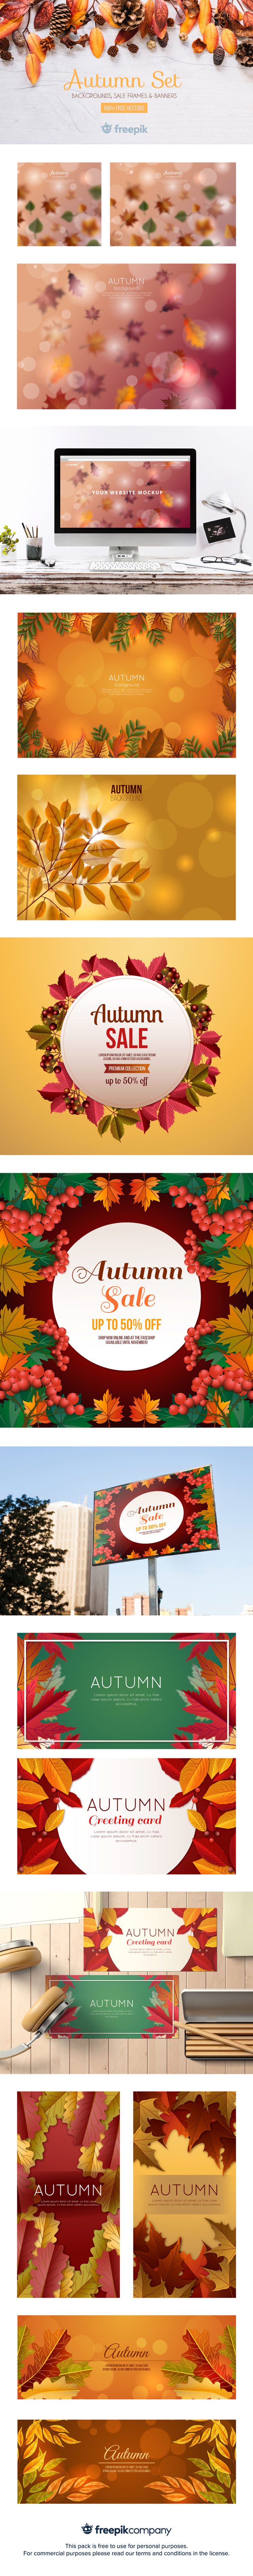 Free Autumn Set for Banner, Backgrounds and Headers